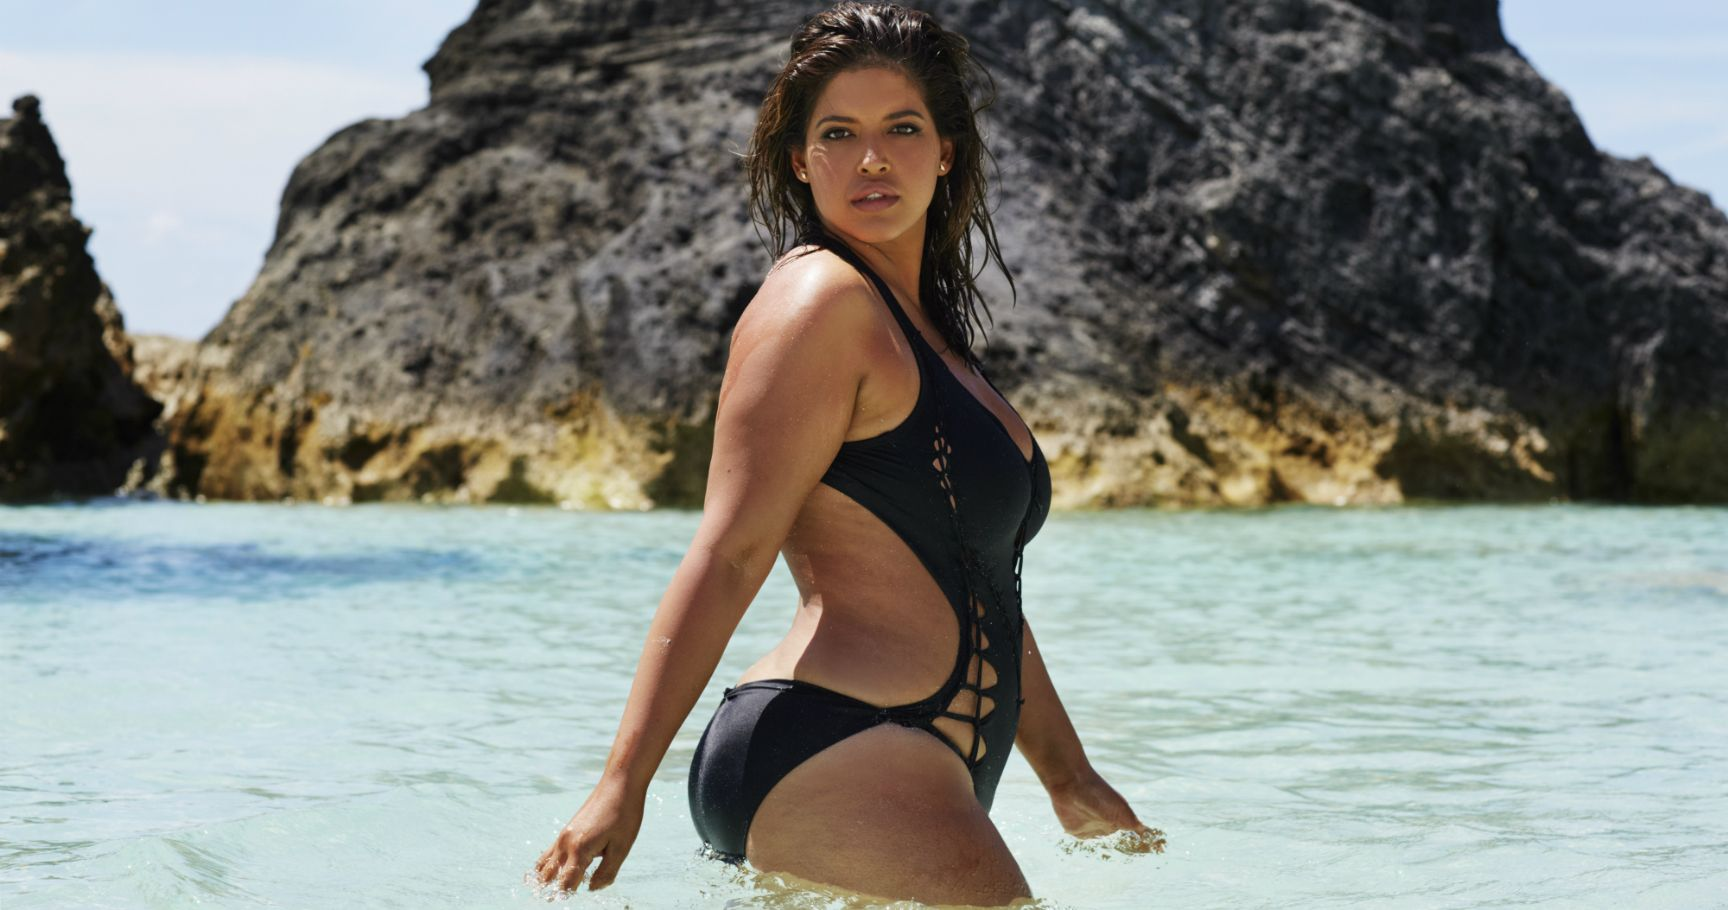 10 Hot Curvy Models Who Are Changing the Face of Fashion